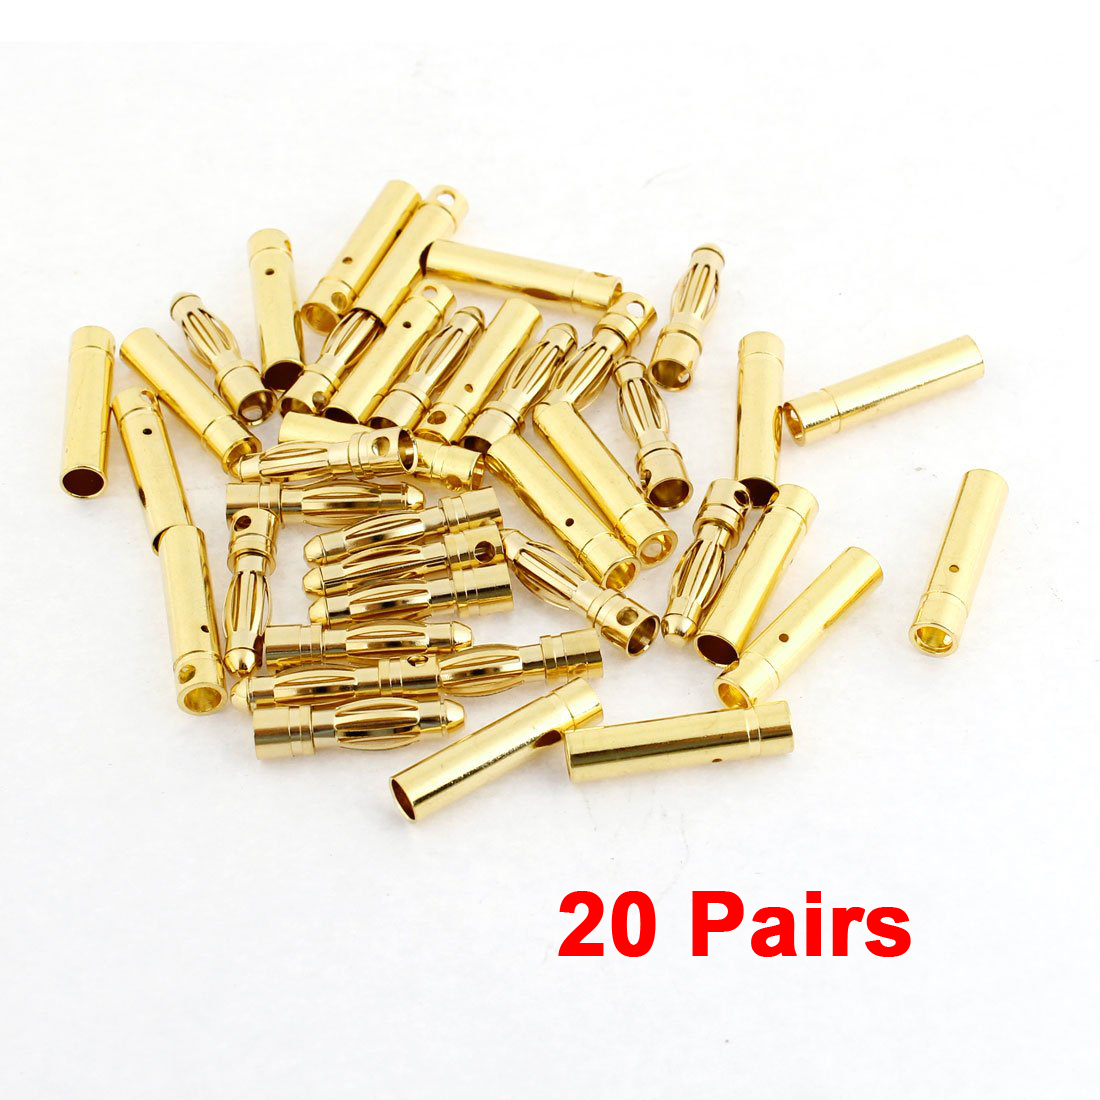 MYLB-20 Pairs Gold Tone Metal RC Banana Bullet Plug Connector Male Female 4mm 10 pairs female male xt90 banana bullet connector plug for rc lipo battery b